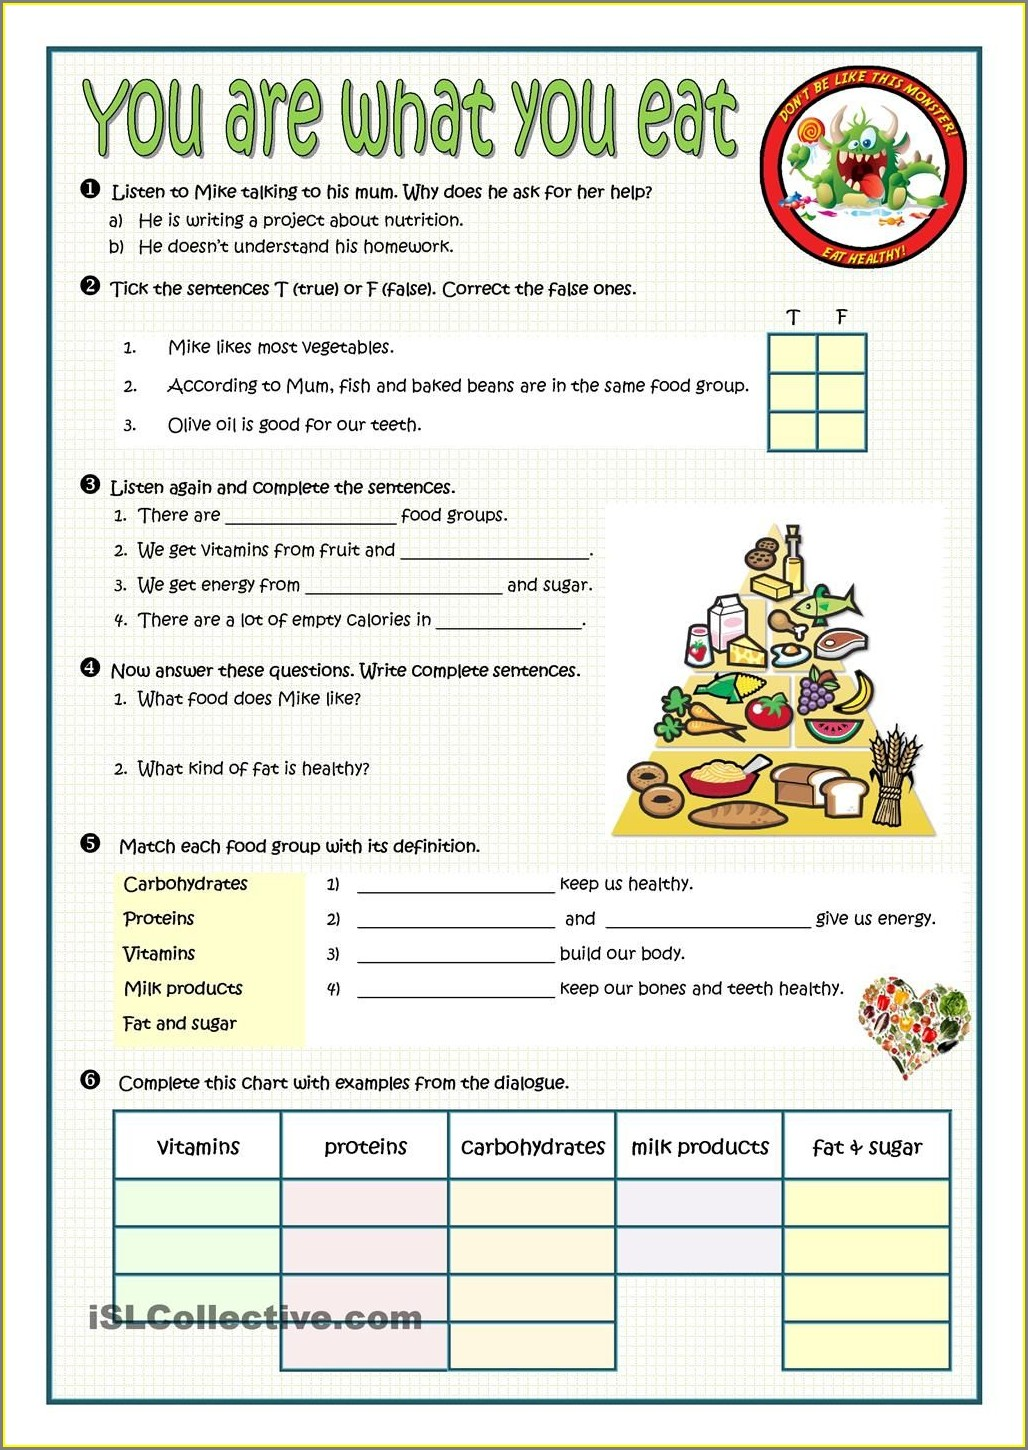 Worksheet On Food We Eat For Class 2